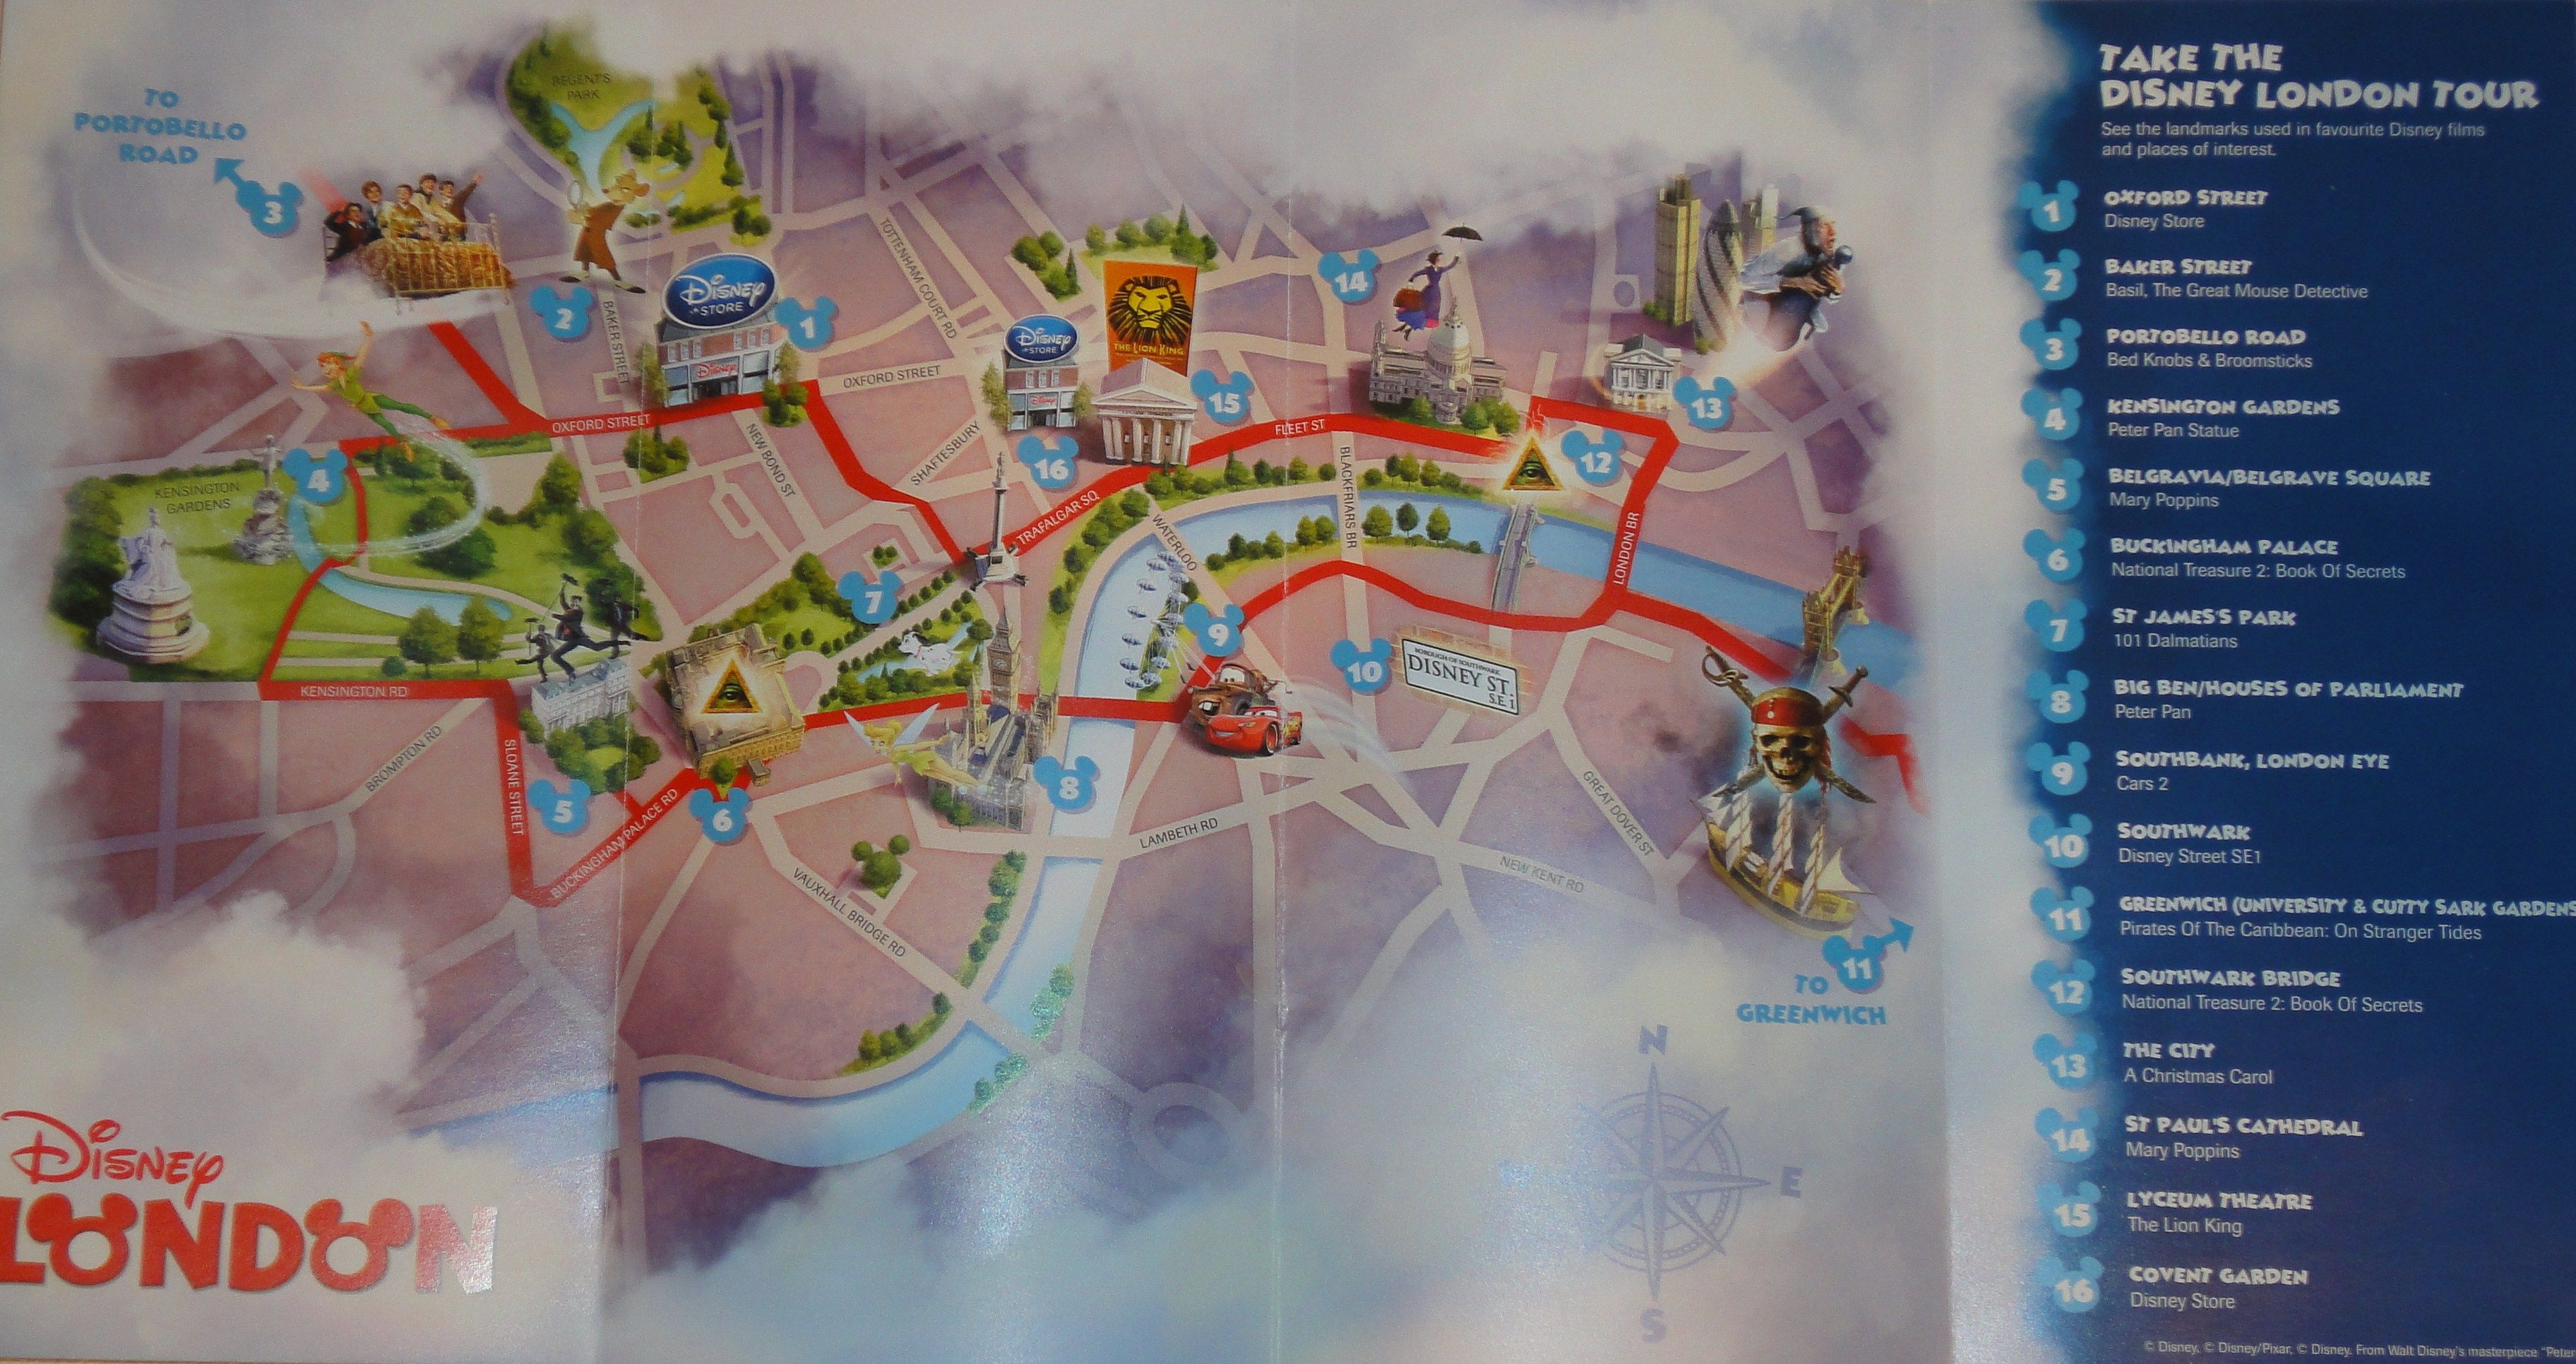 disney london tour map